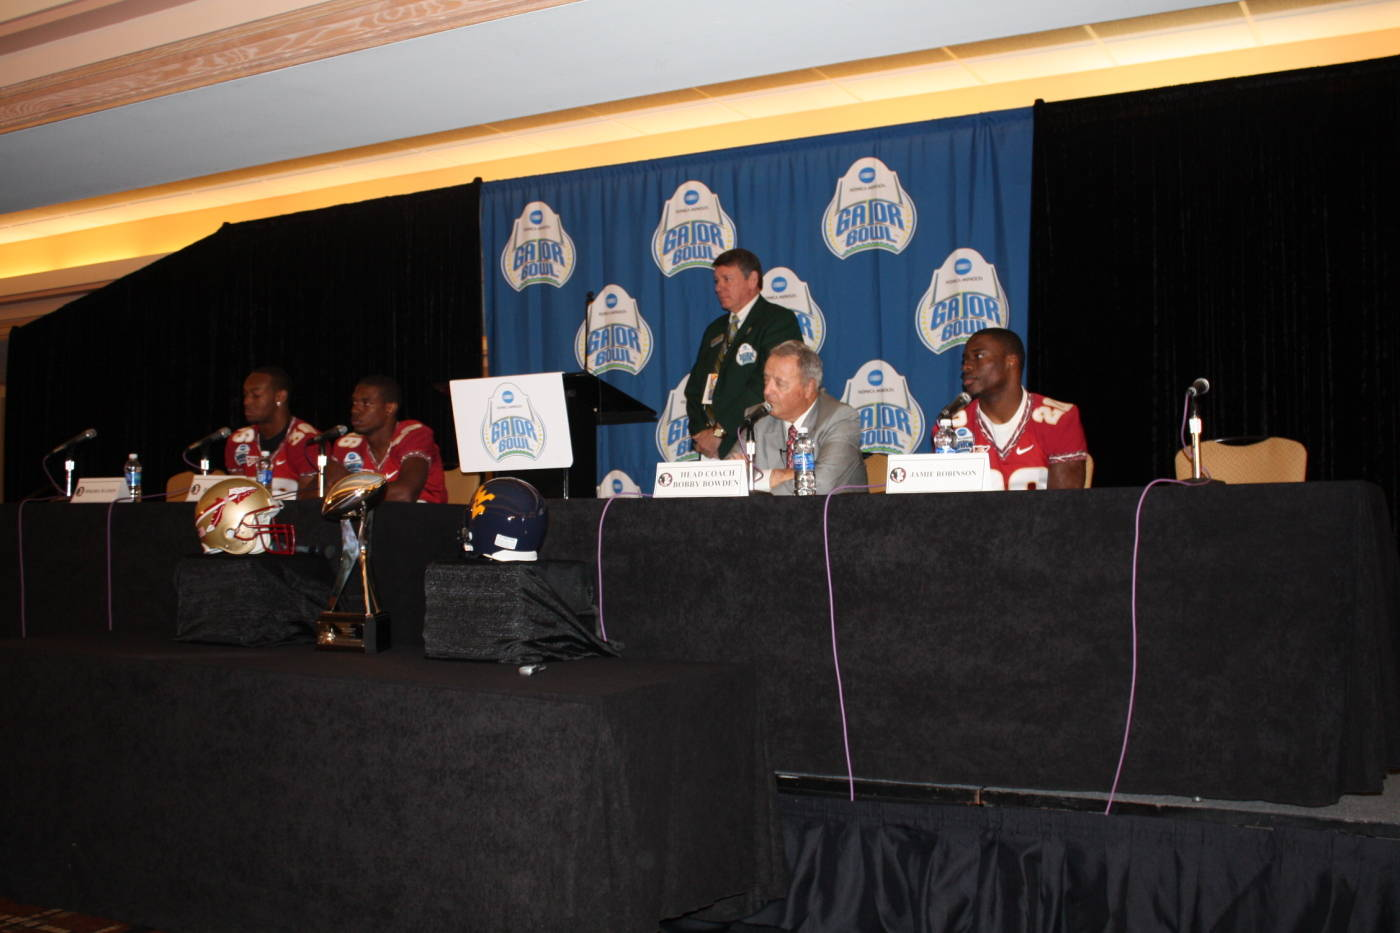 FSU head coach Bobby Bowden, Jamie Robinson, Rod Owens, and Dekoda Watson at the Gator Bowl coaches and players press conference at the Hyatt in Jacksonville.